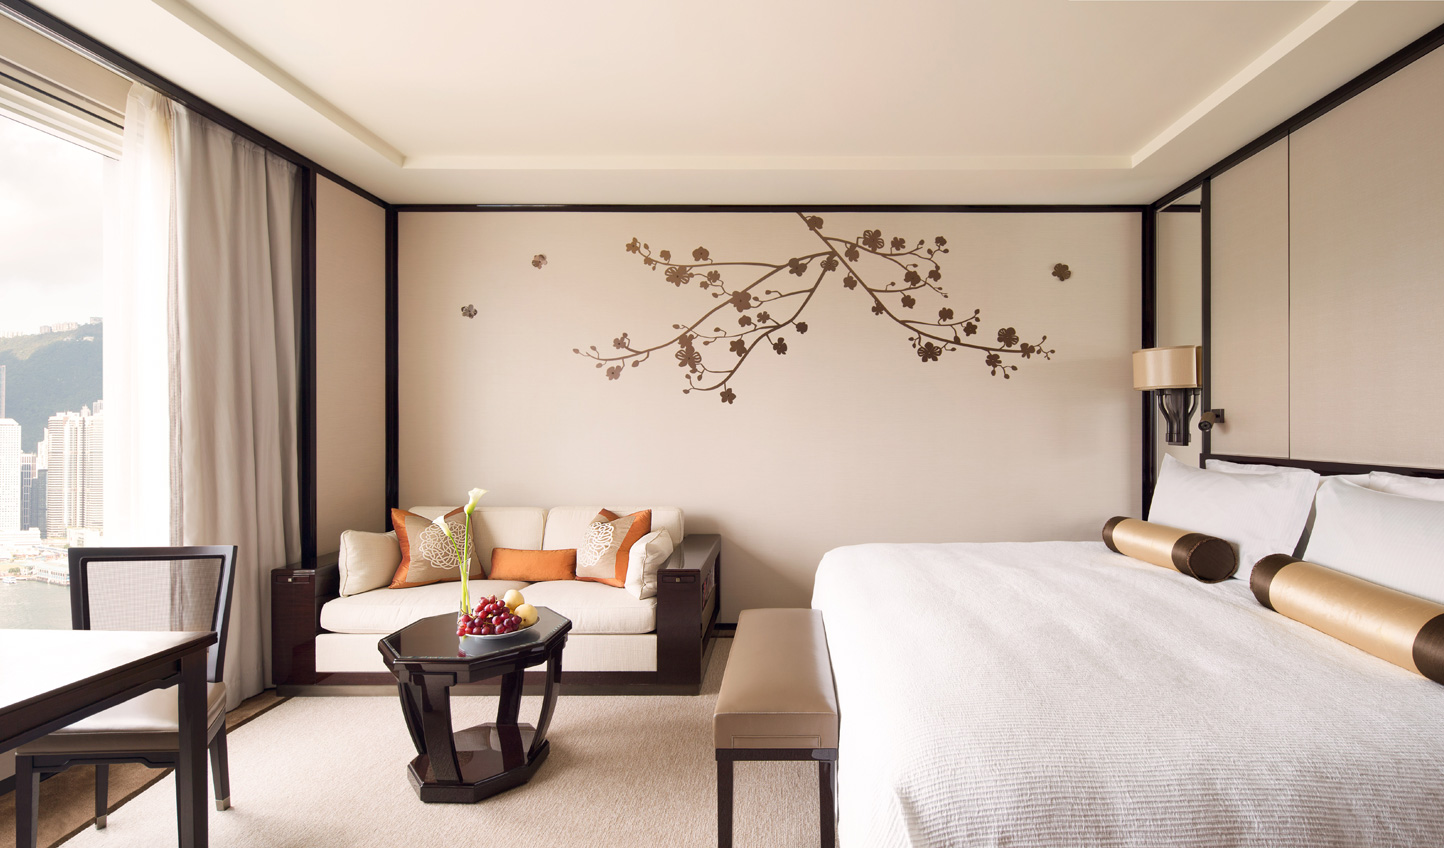 Delicate decor allows the views to take centre stage